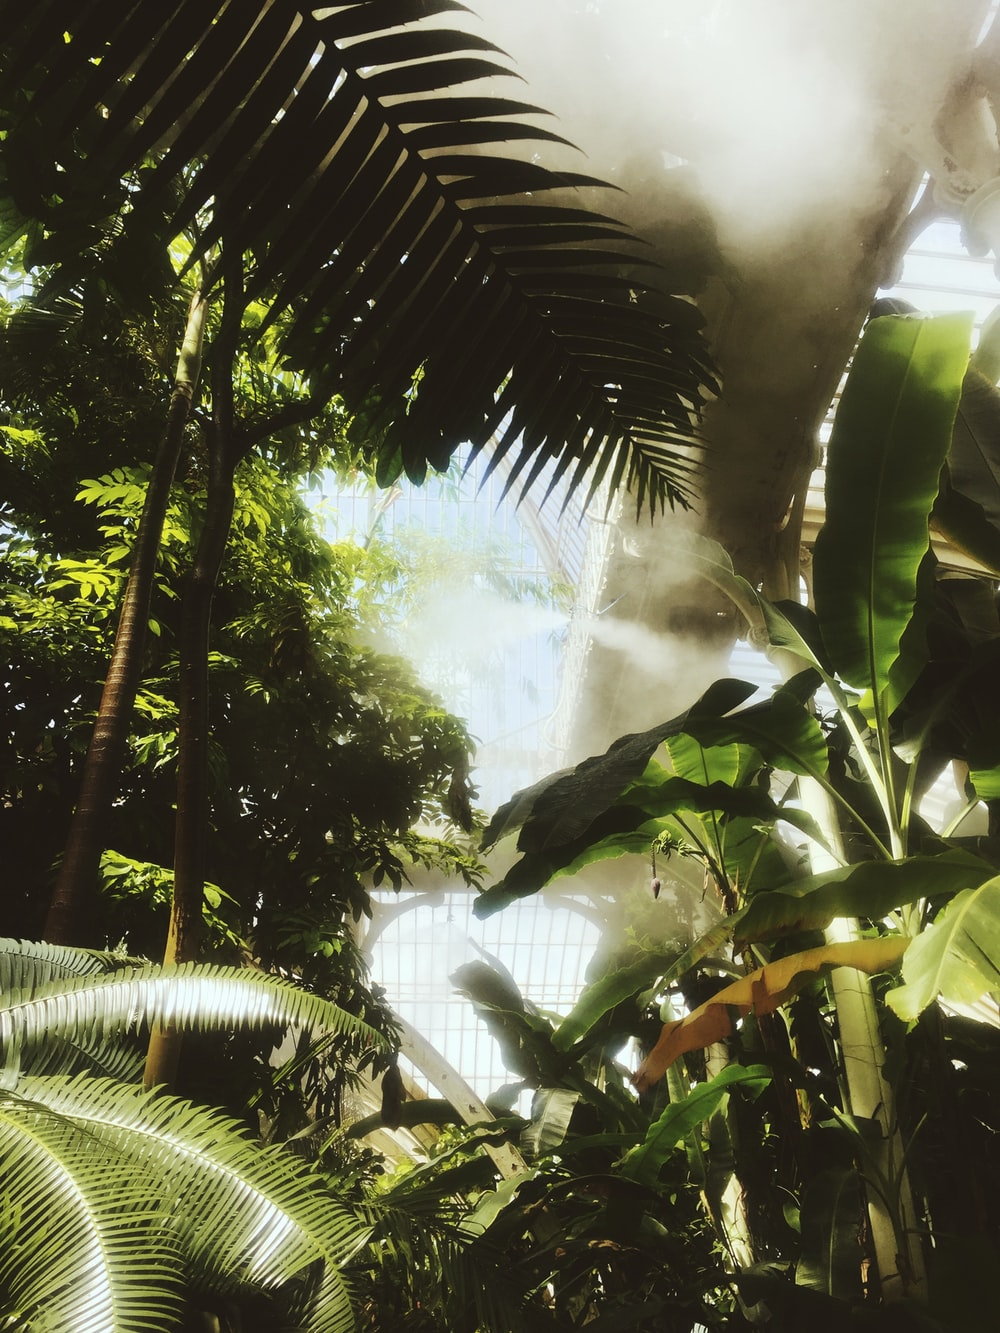 coconut tree and banana plants with sunlight passing through